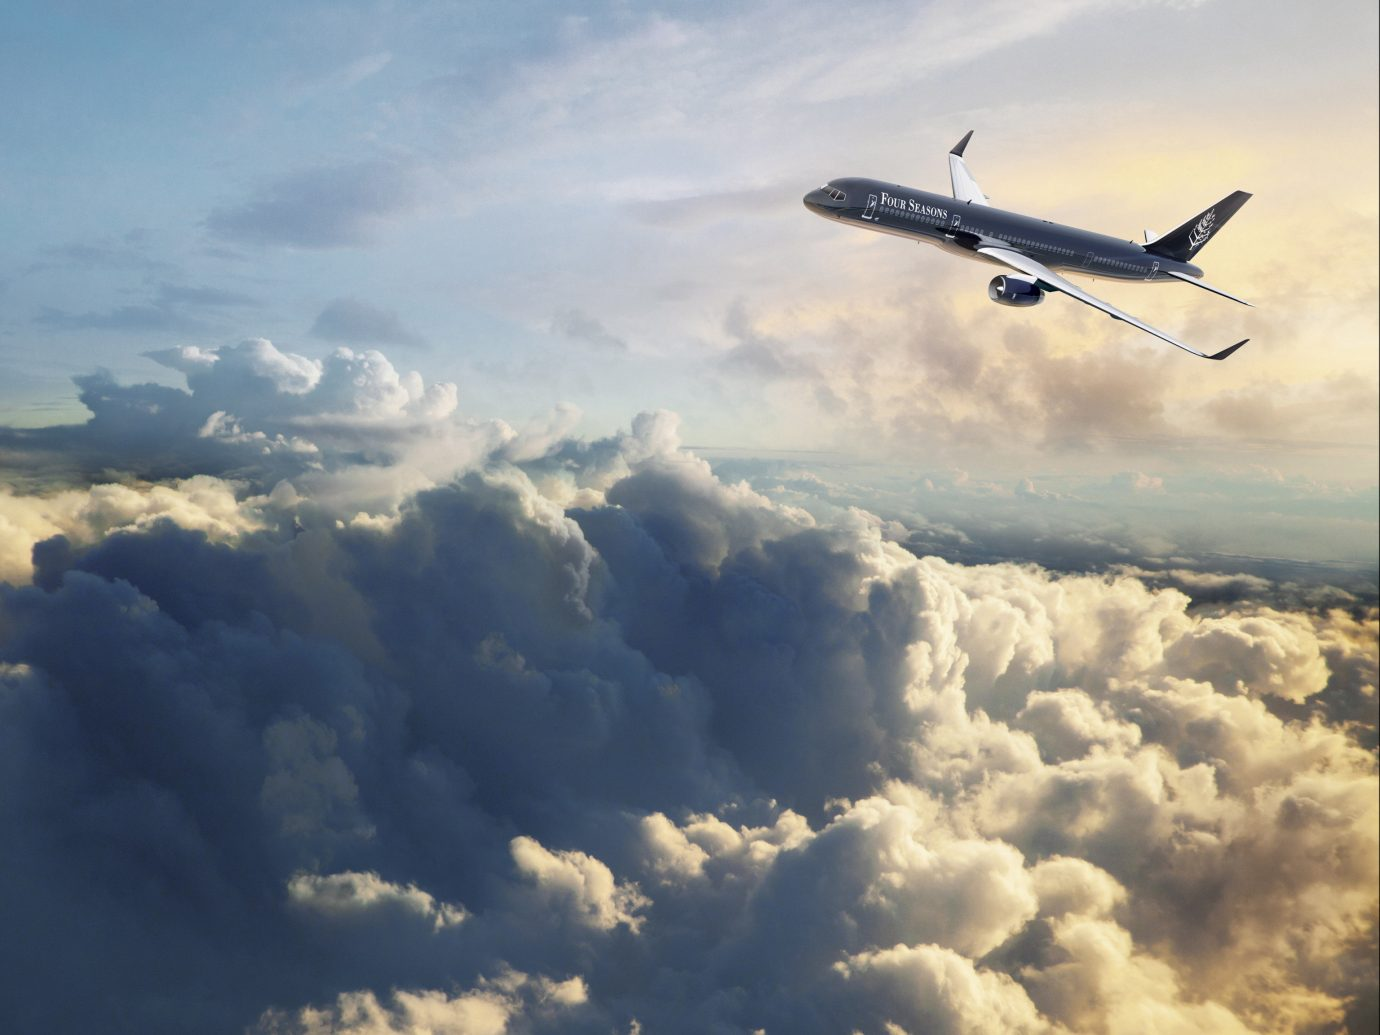 Trip Ideas sky outdoor flying plane aircraft transport airplane cloud clouds cloudy air travel airline cumulus flight air atmosphere vehicle atmosphere of earth aviation airliner air force takeoff wing meteorological phenomenon high day land